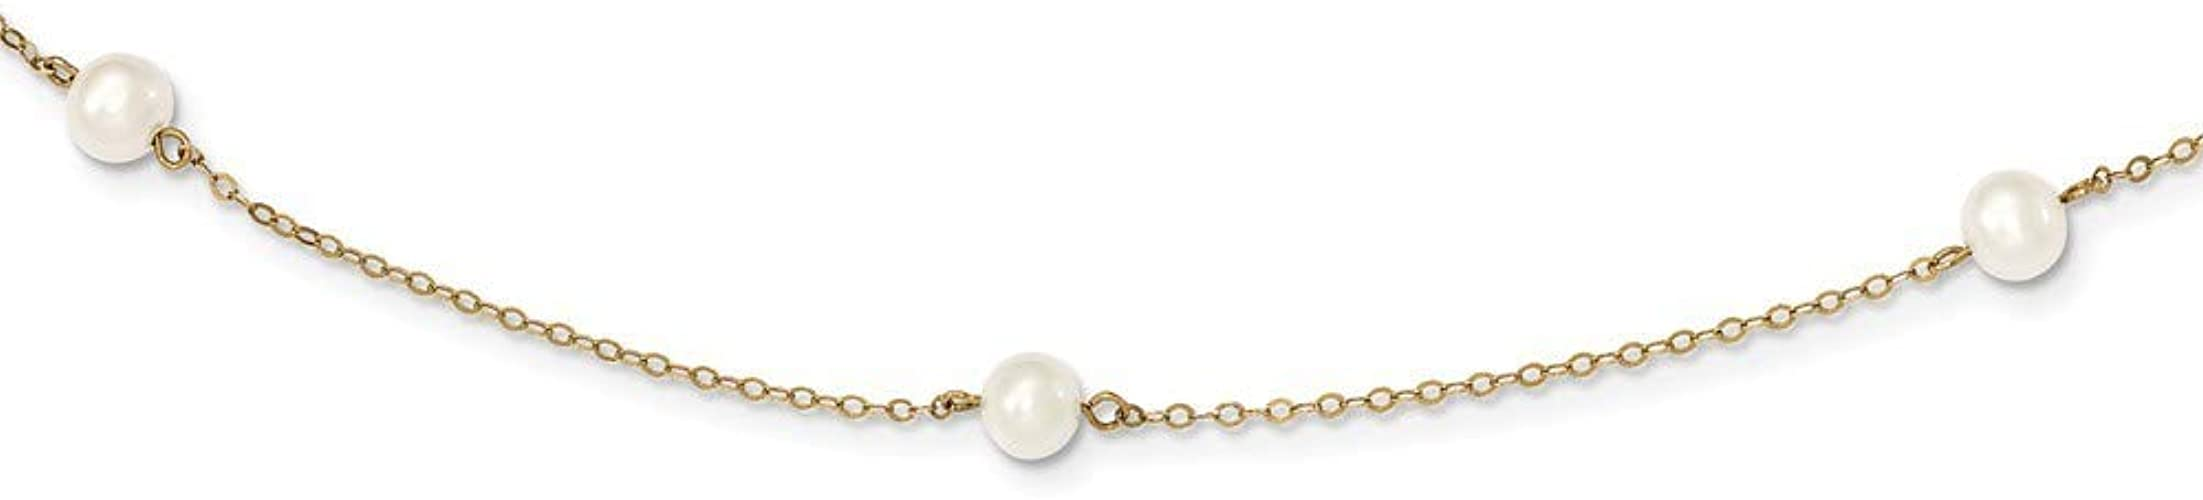 14K Yellow Gold 18in Curved Bead and 7-8mm White Freshwater Cultured Pearl Necklace